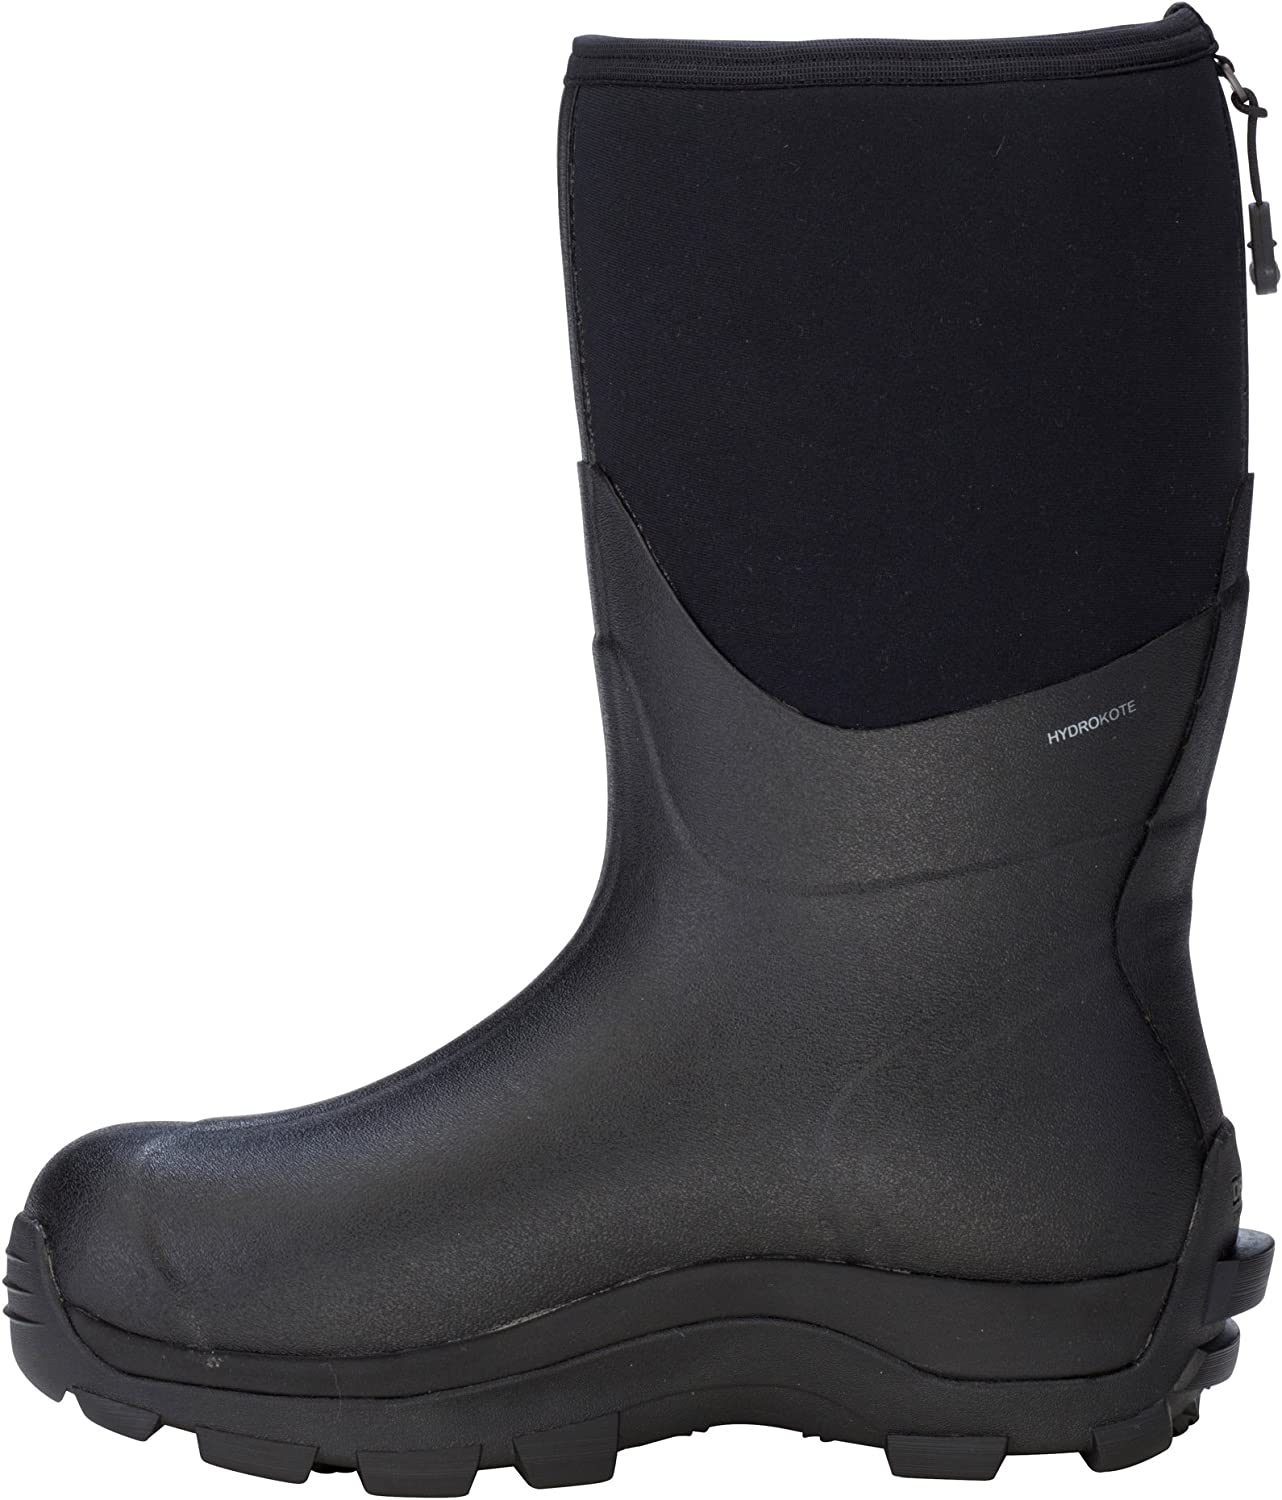 Dryshod Arctic Storm Mid Mens Foam Black Grey Winter Boots